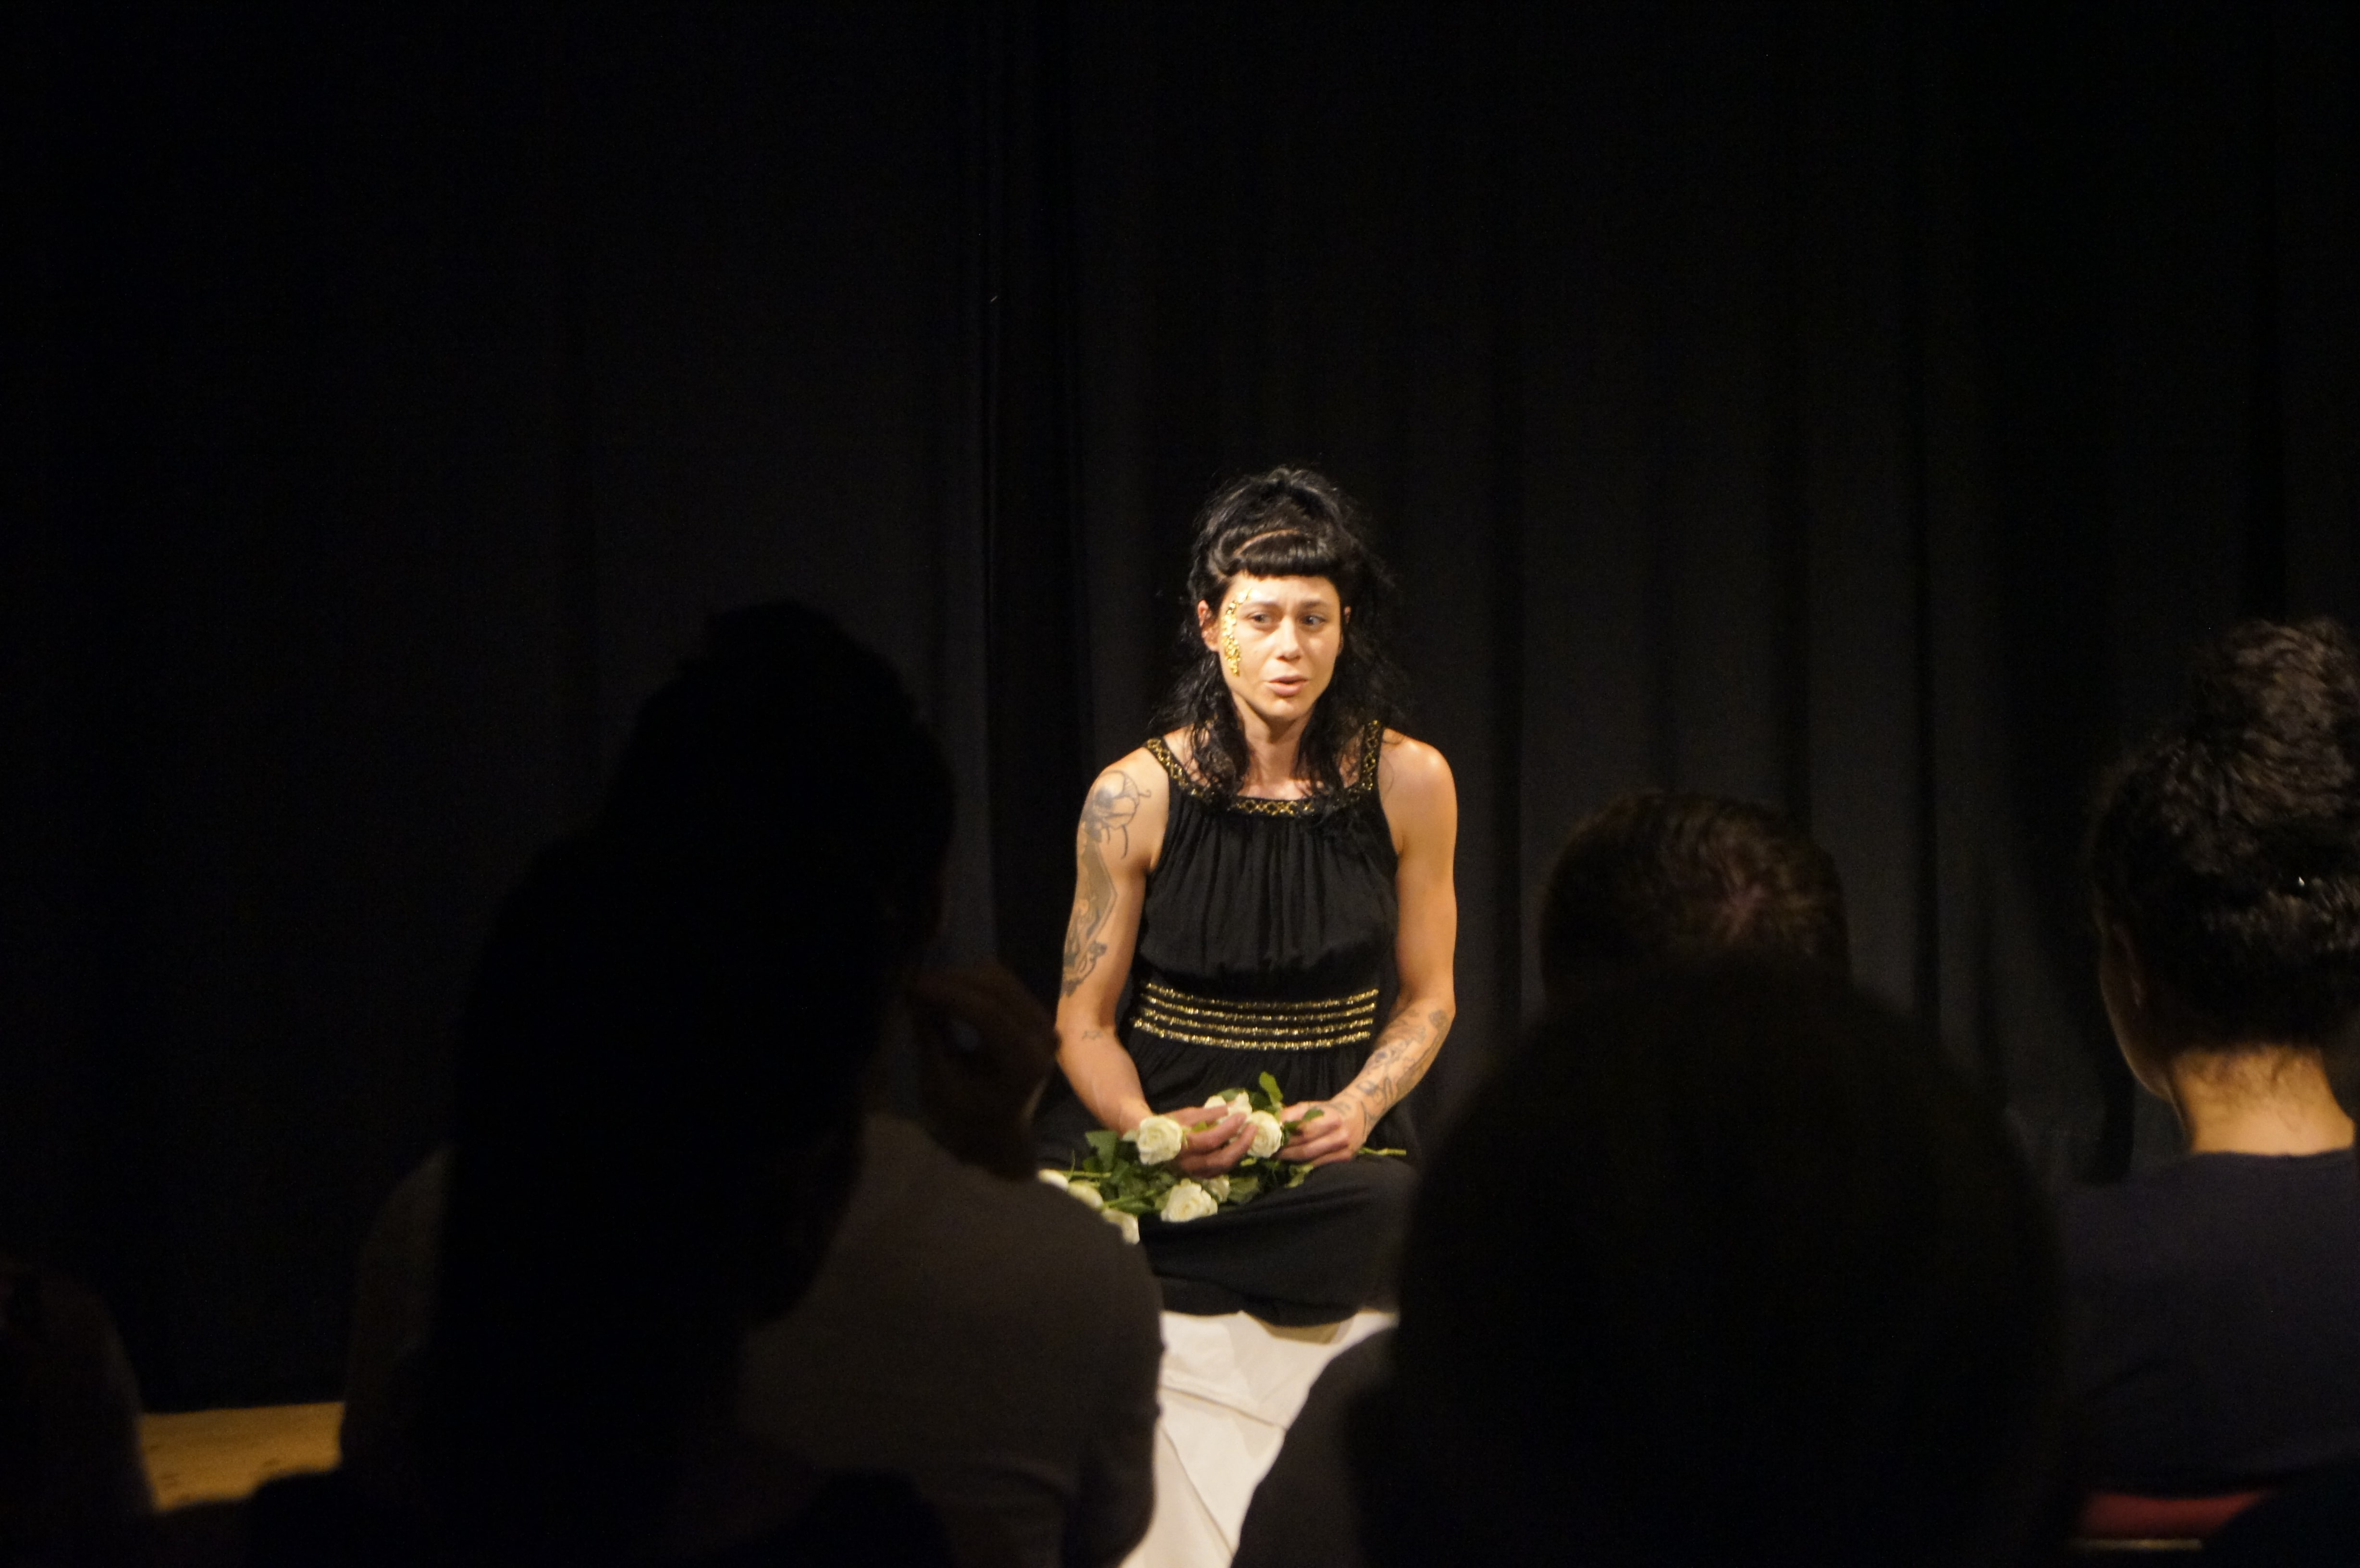 Theatre performance, Woman with dark brown hair, bangs, and a black, ancient Greek-looking dress. Black curtain behind her. She looks worried